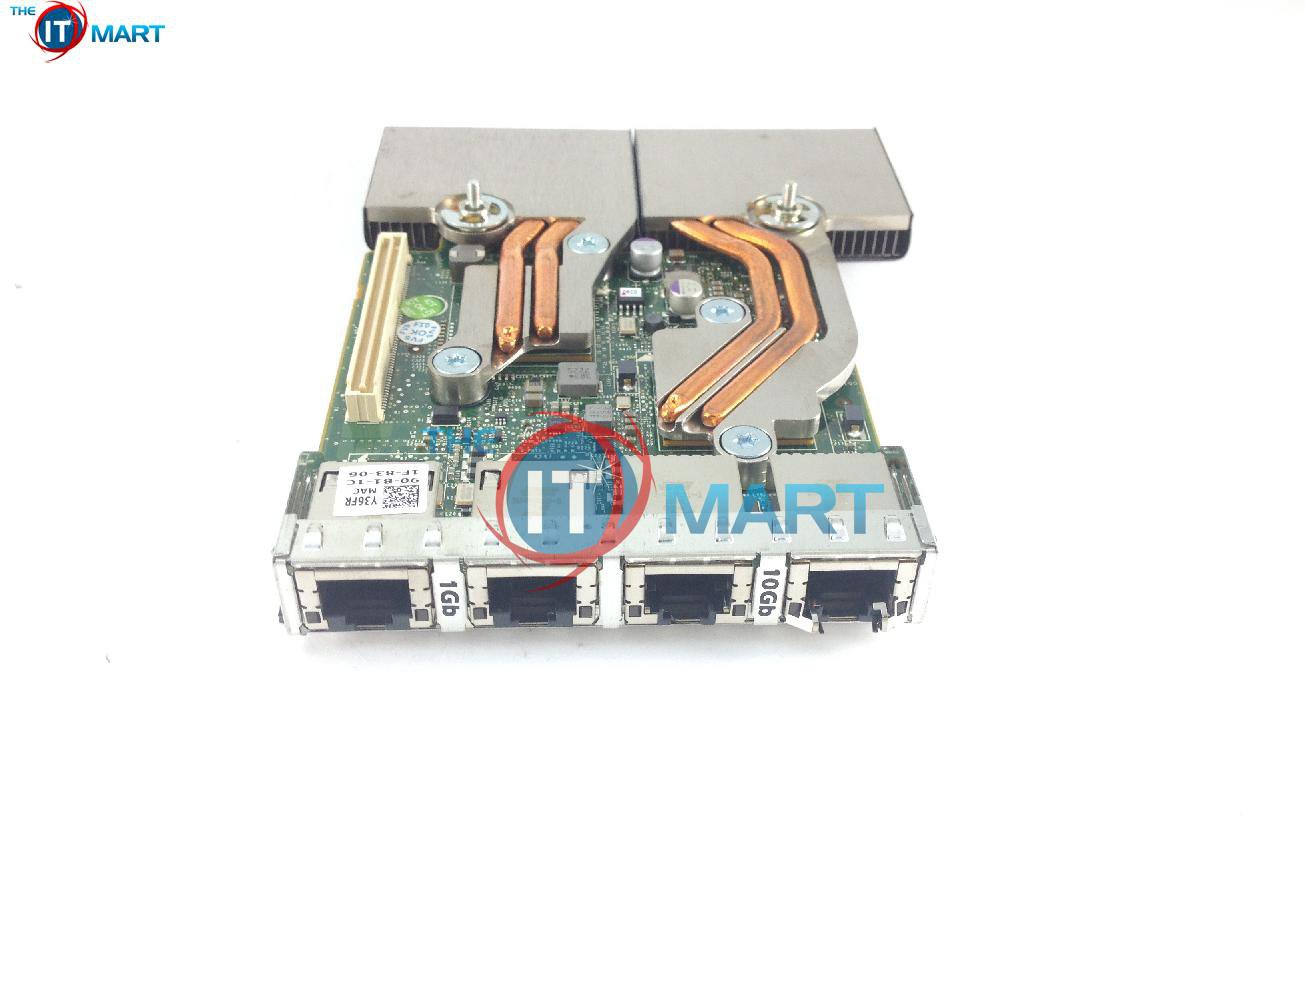 Dell Broadcom Y36FR 57800S Base-T BT 2+2P Daughter Card For R620 R720 R630 R730